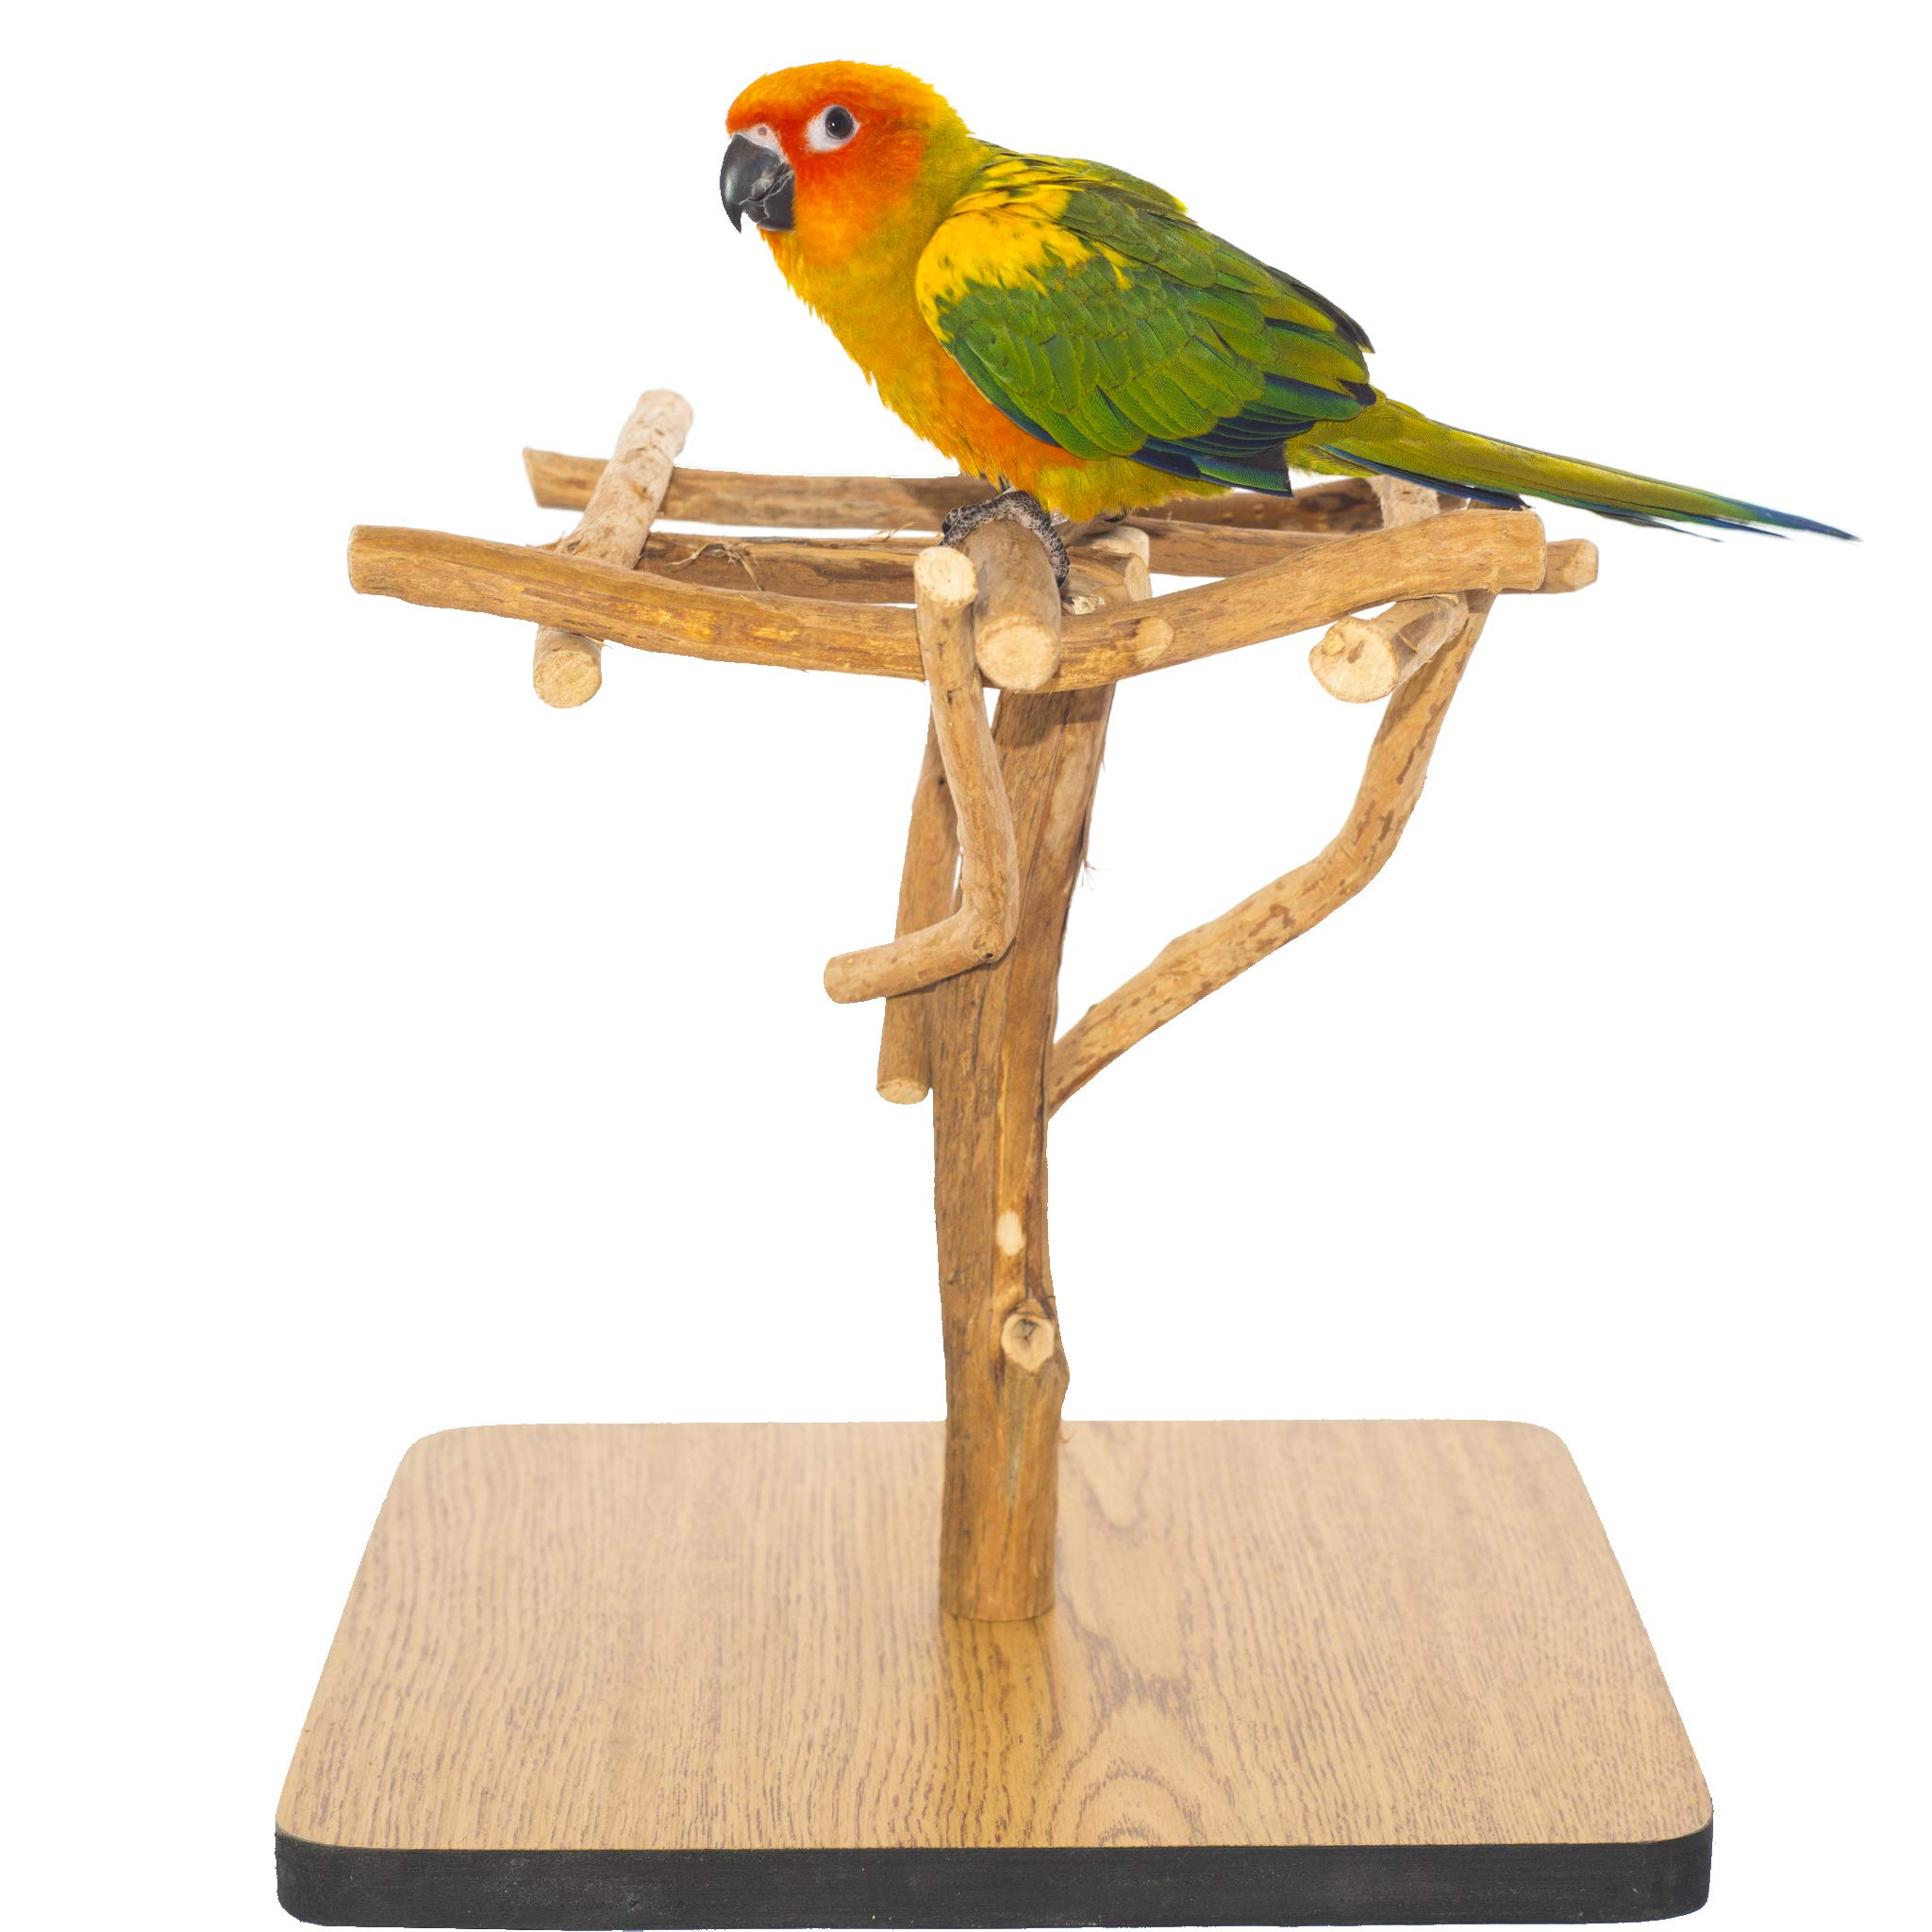 Birds LOVE Deluxe Dragonwood Tabletop Bird Stand Perch Gym Training Playstand Cockatiels Lovebirds Conures Parakeets 11.5'' x 11.5'' x 11.75'' by Birds LOVE